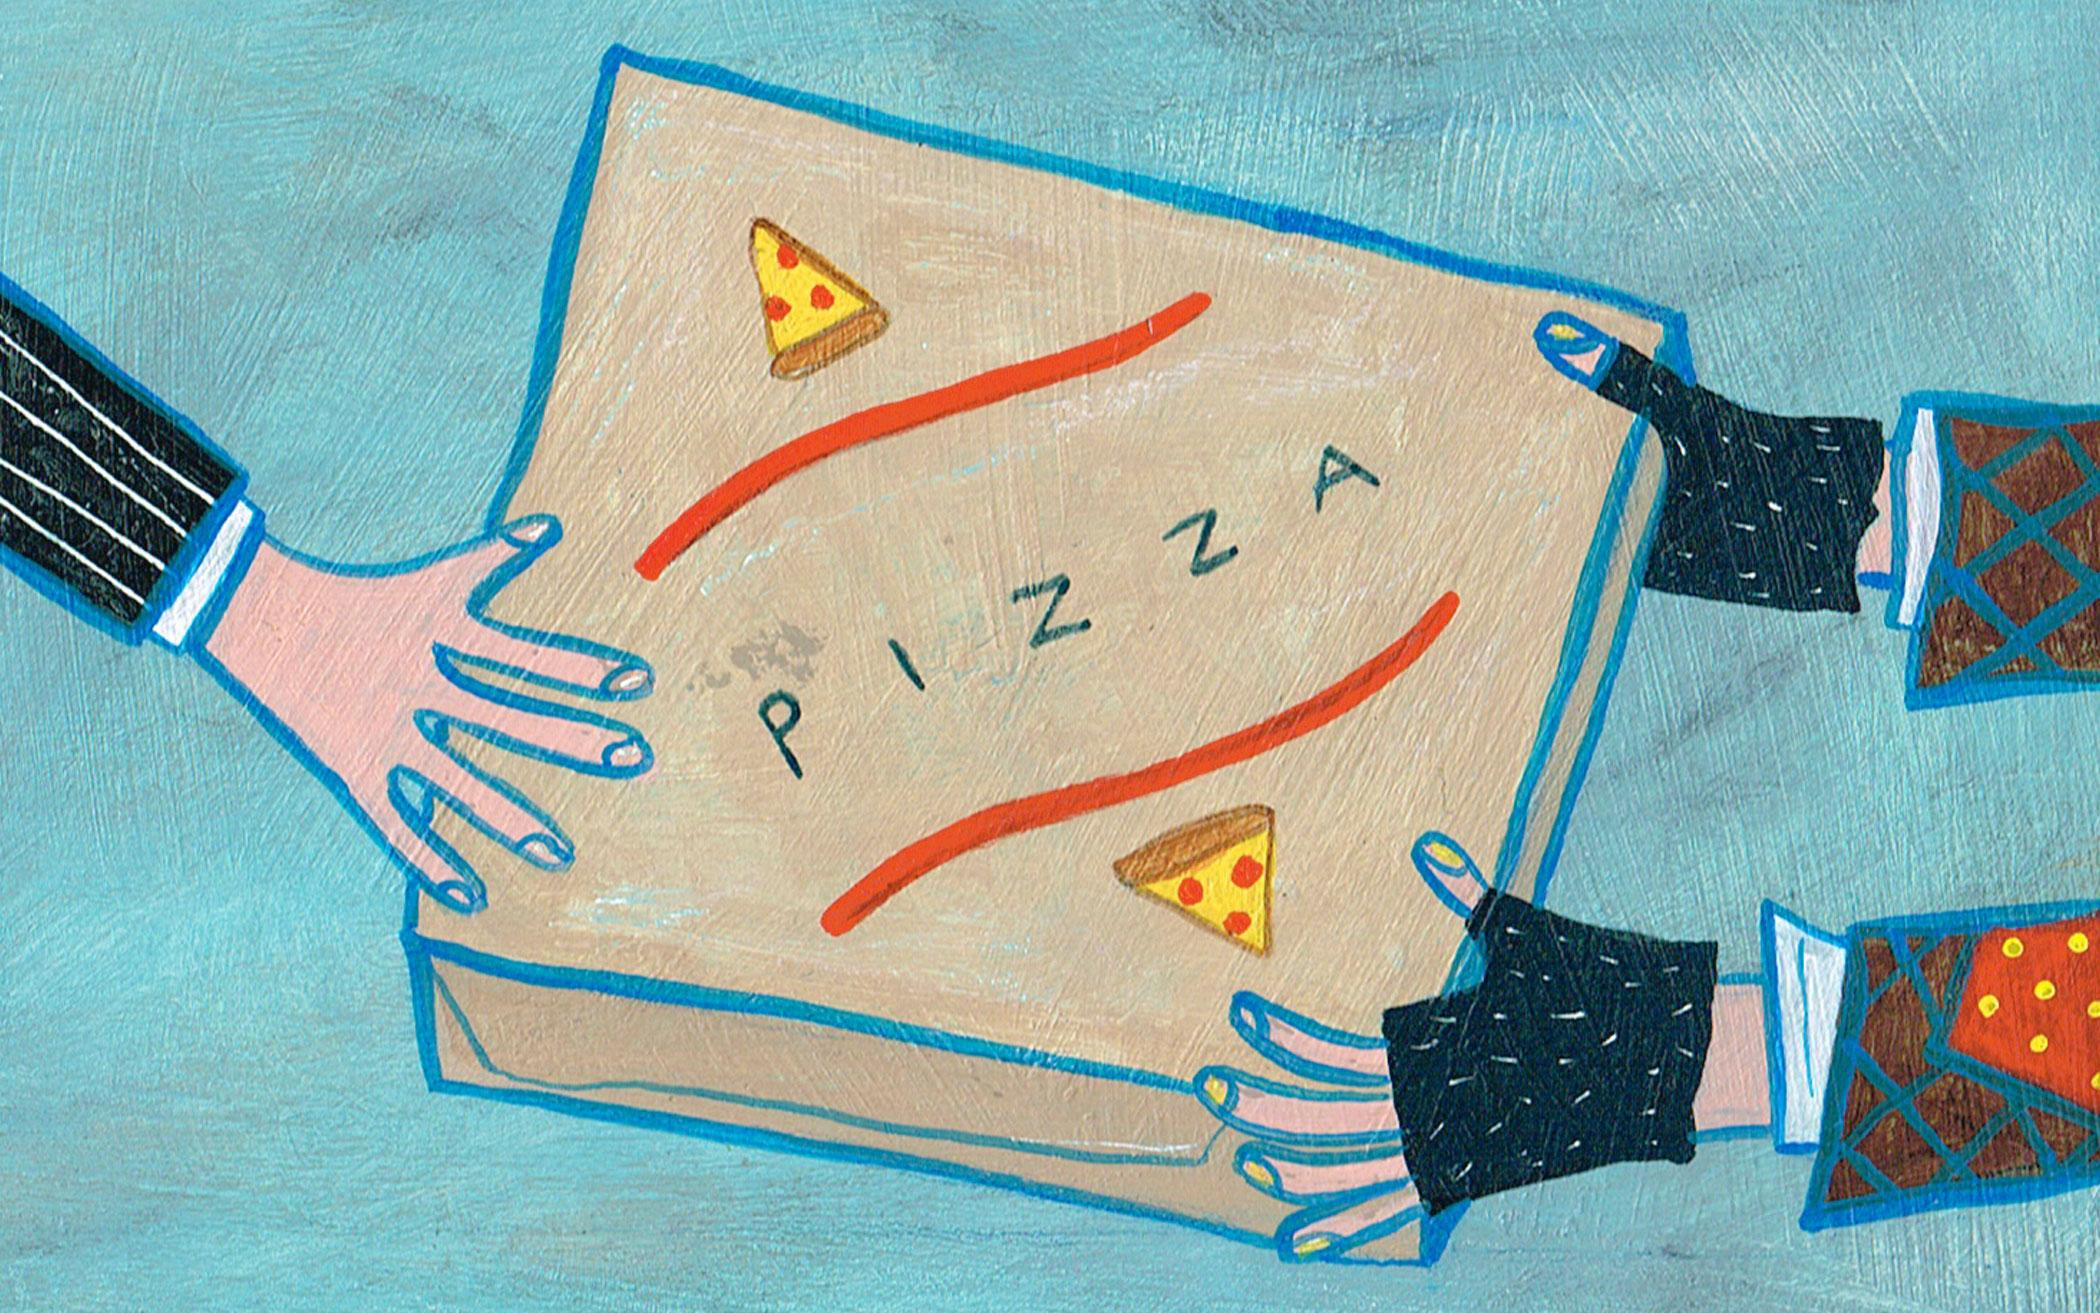 A Pizza Box SIgn